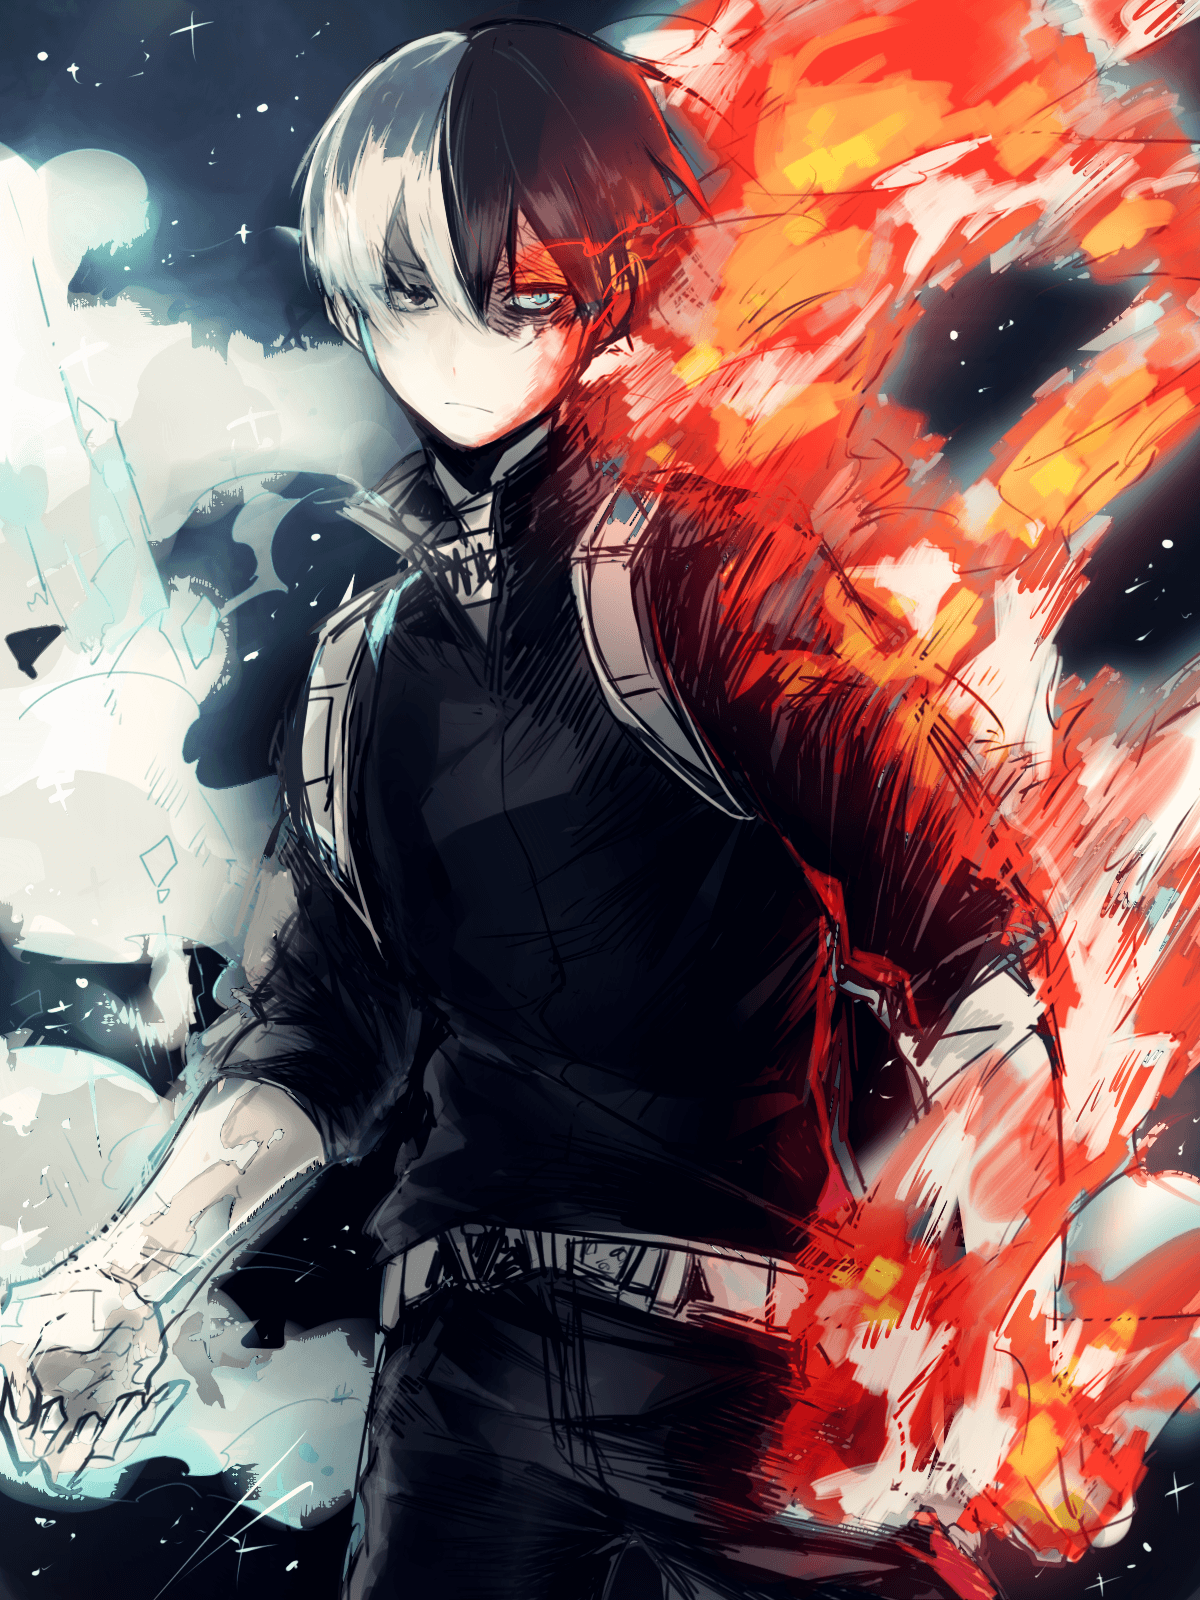 Todoroki Bnha Wallpapers On Wallpaperdog